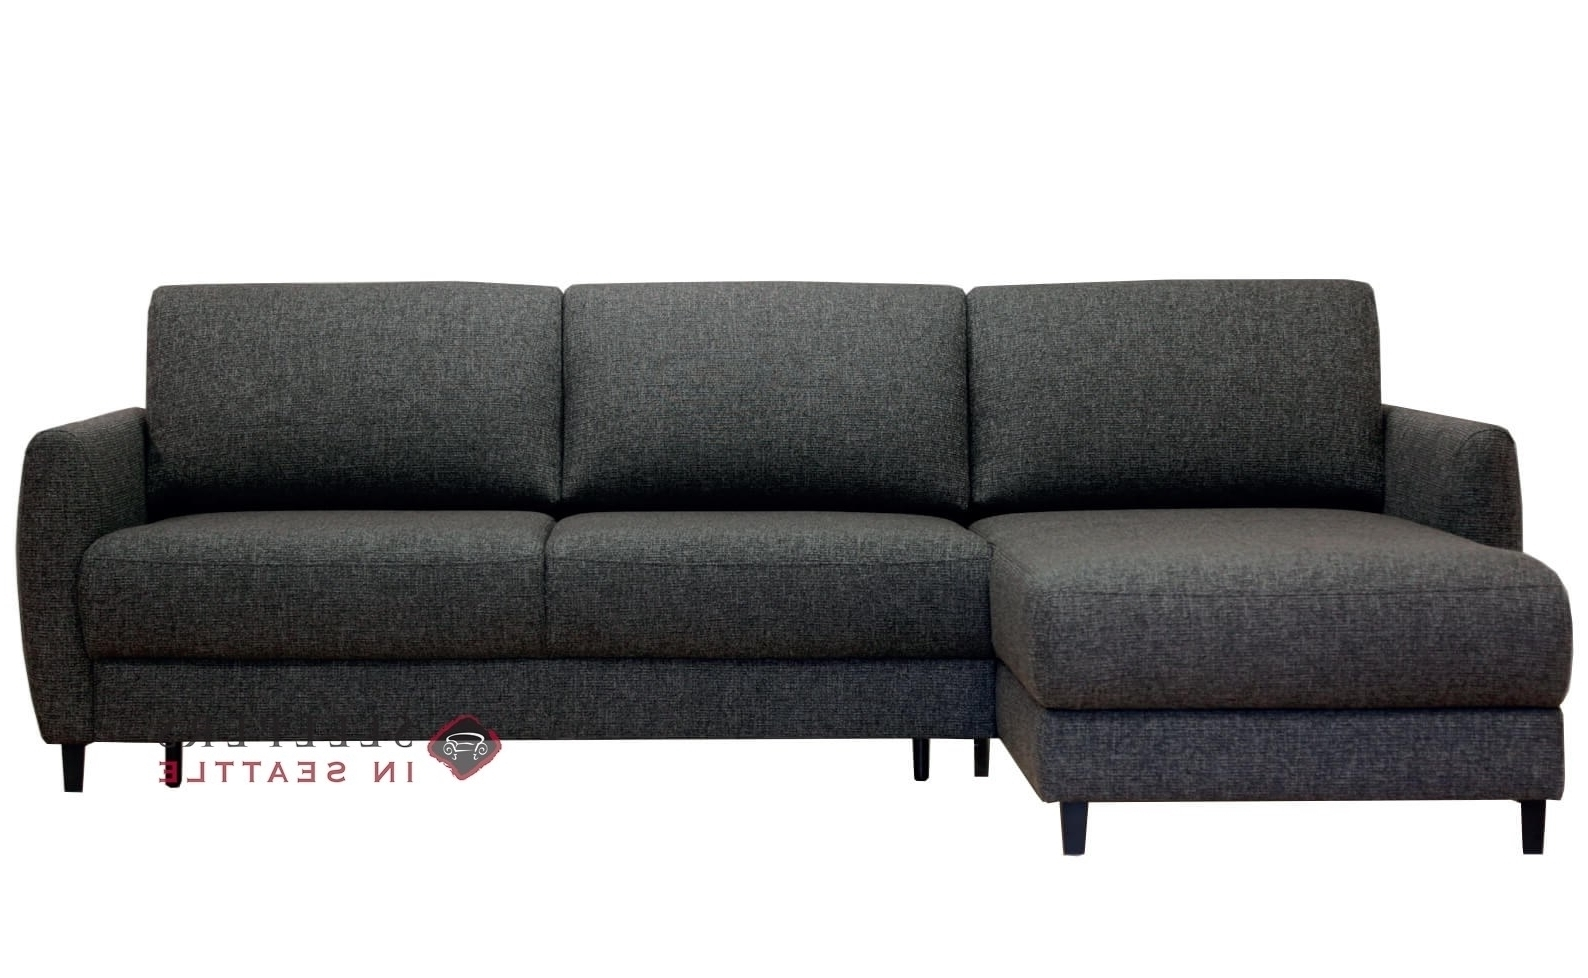 20 The Best Sectional Sofas Under 900 Throughout Sectional Sofas Under (View 8 of 10)